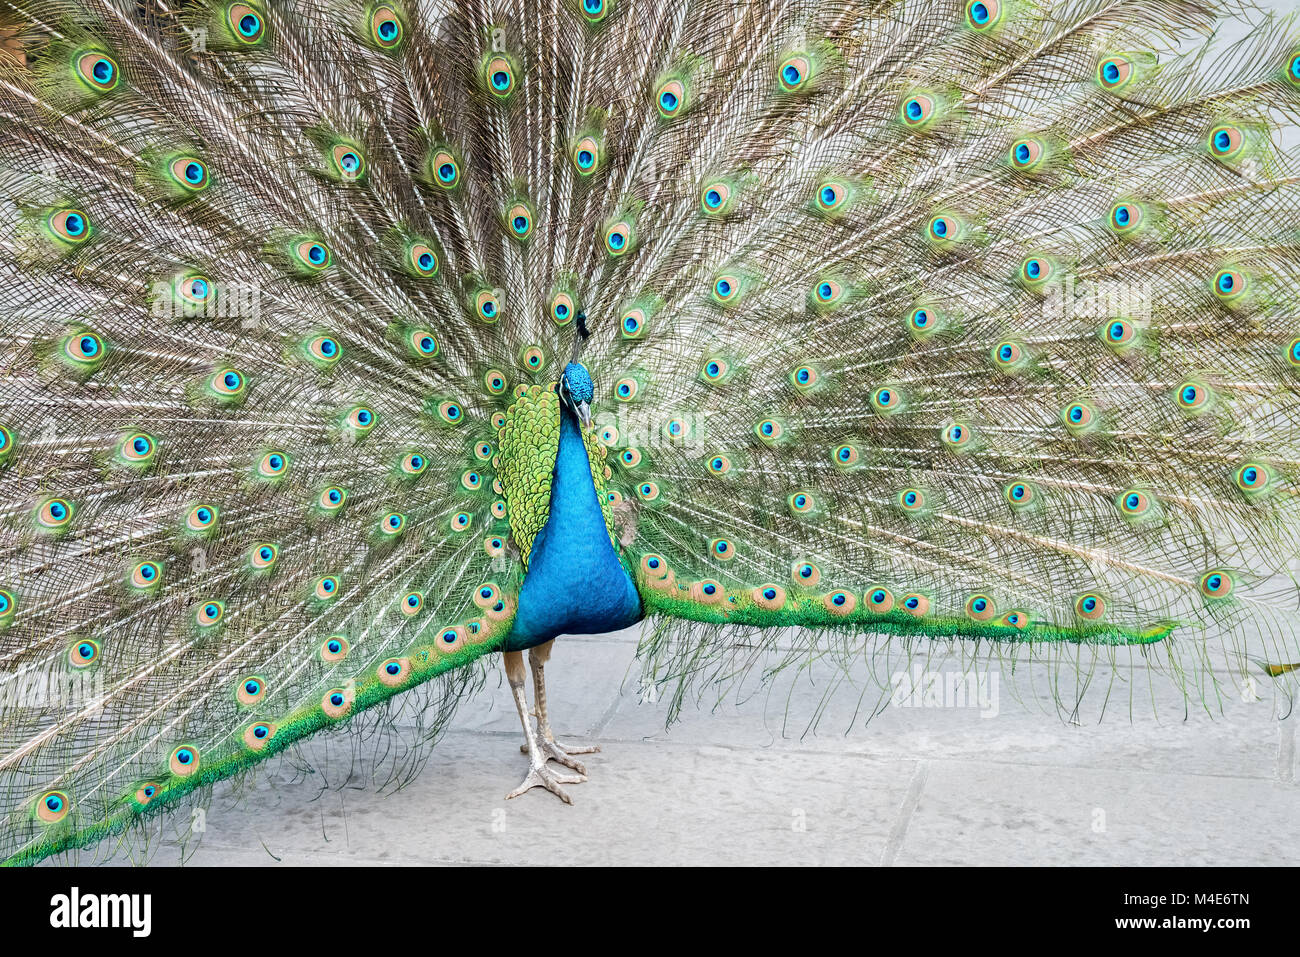 proud as a peacock - Stock Image